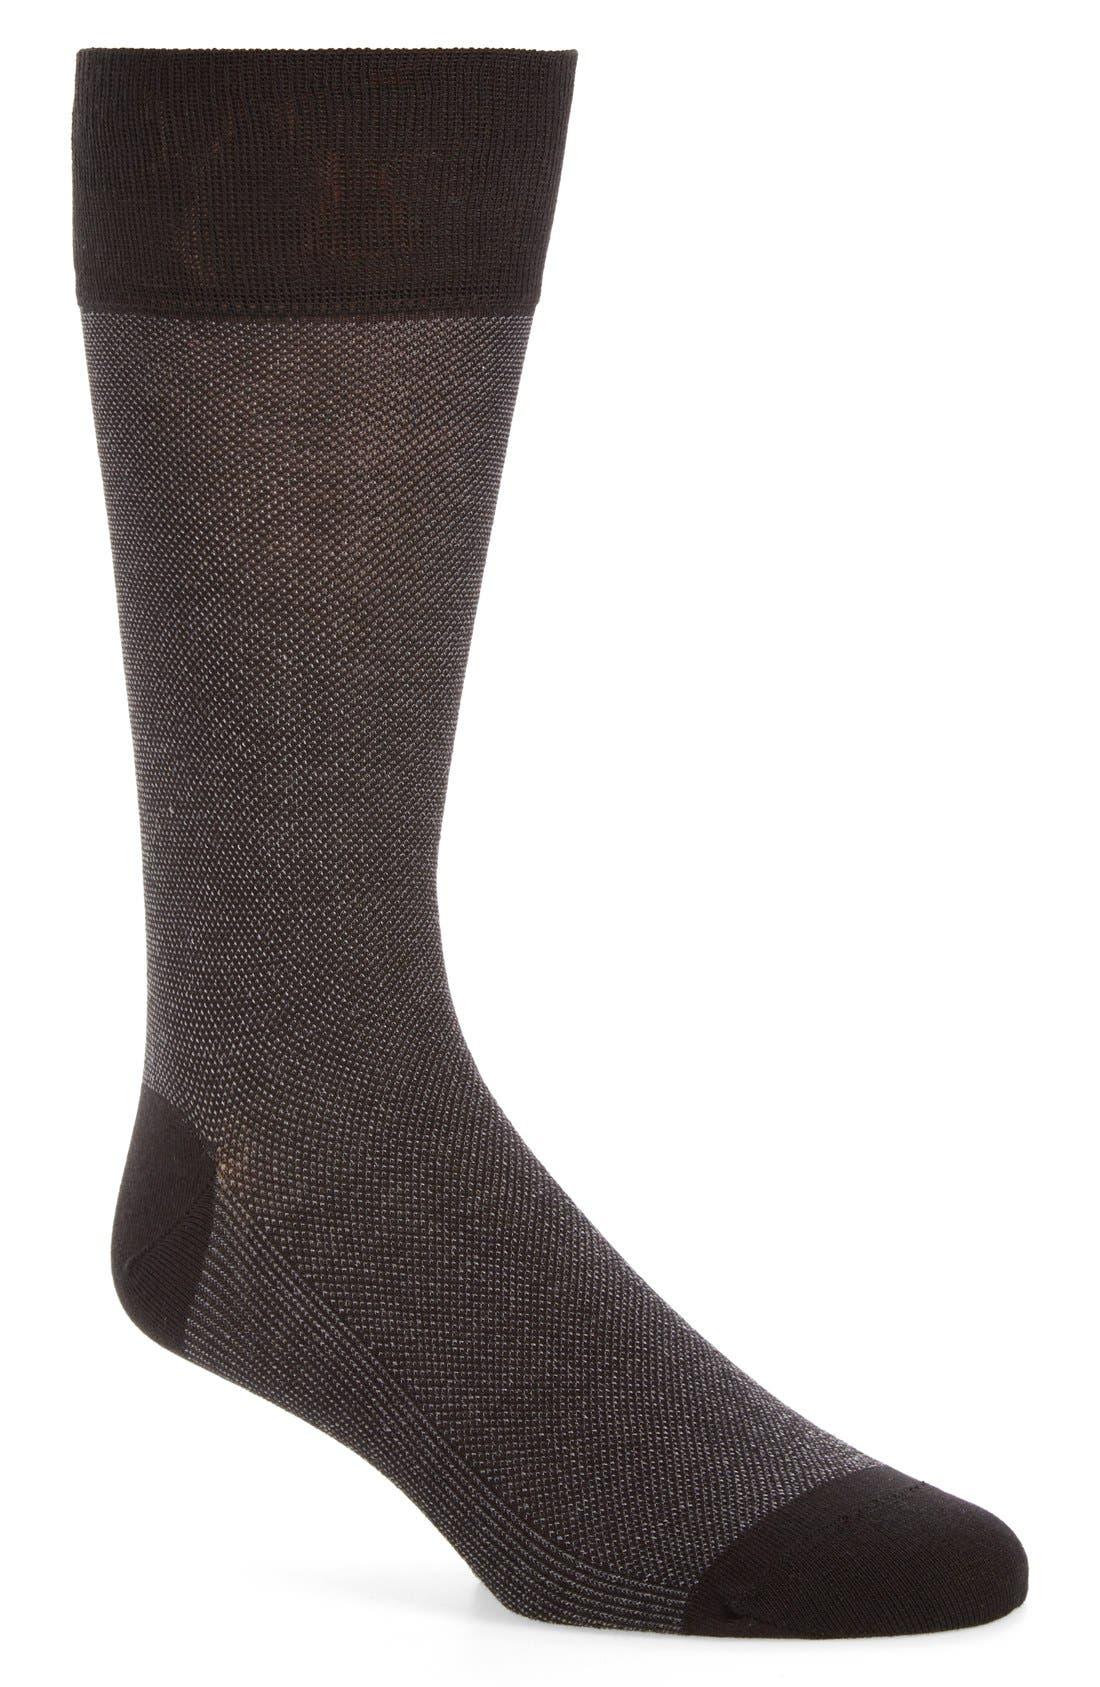 Cole Haan Piqué Texture Crew Socks (3 for $30)